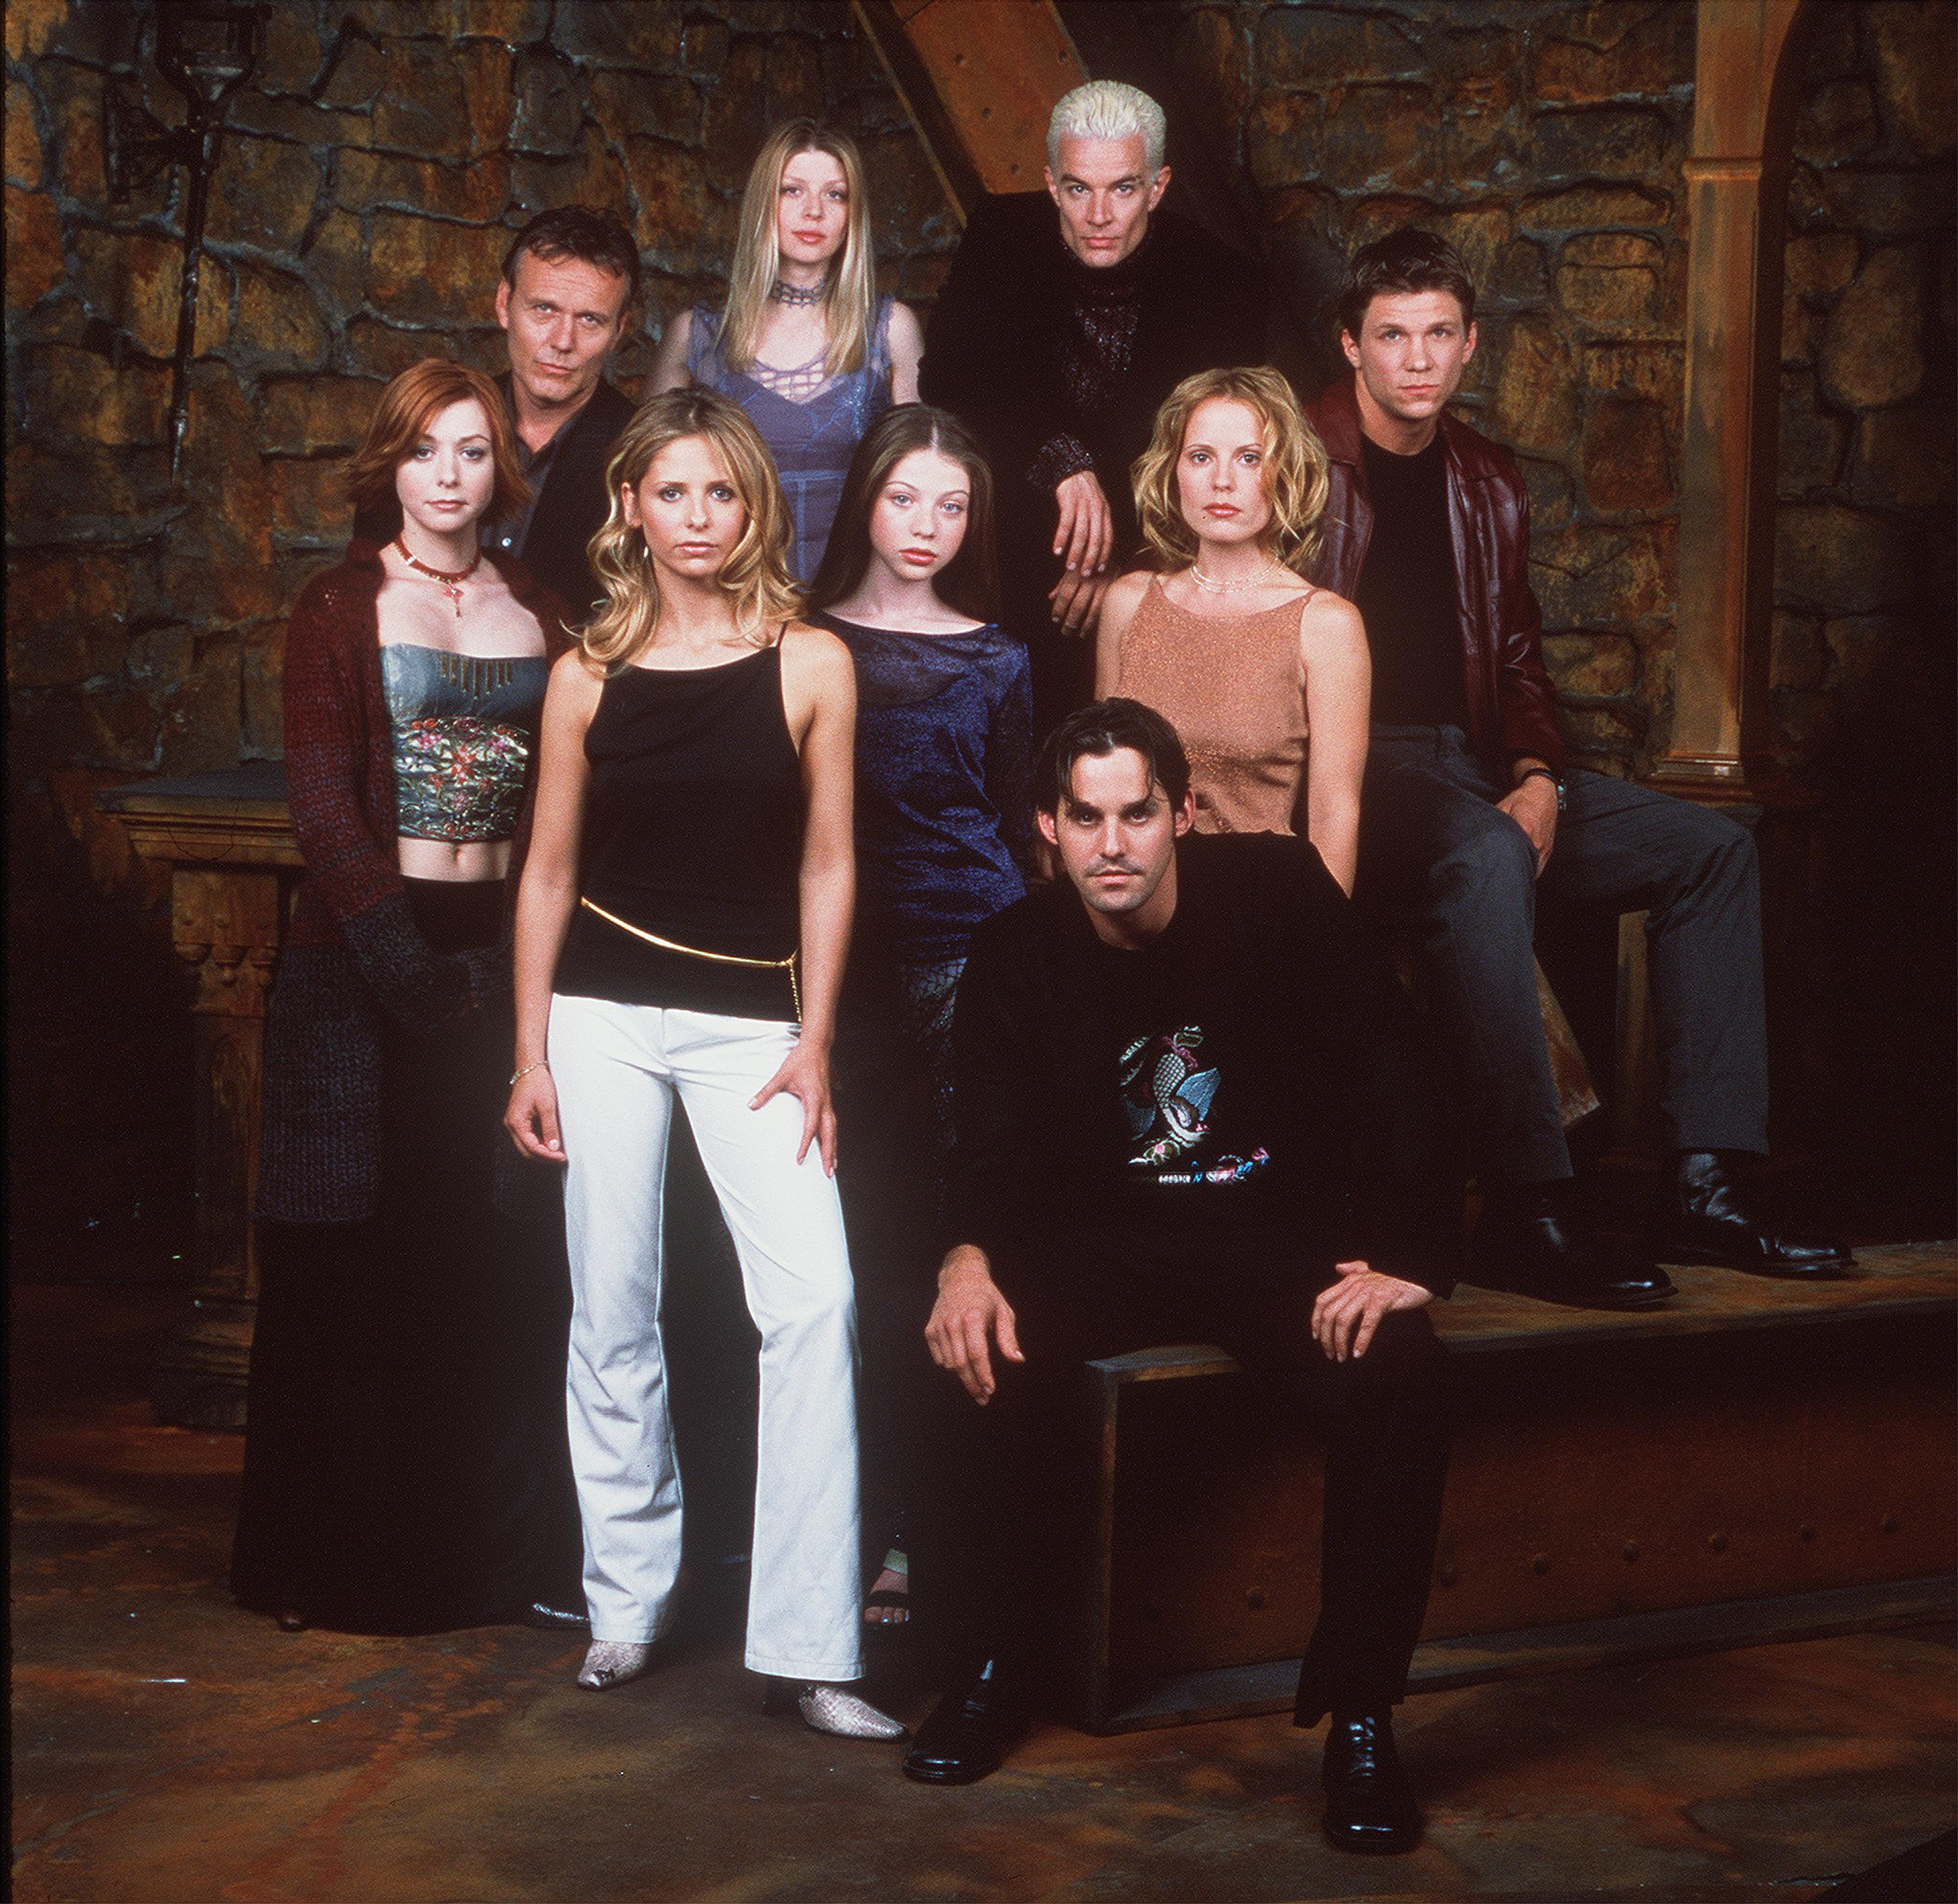 20 years on, where is the Buffy The Vampire Slayer cast now?